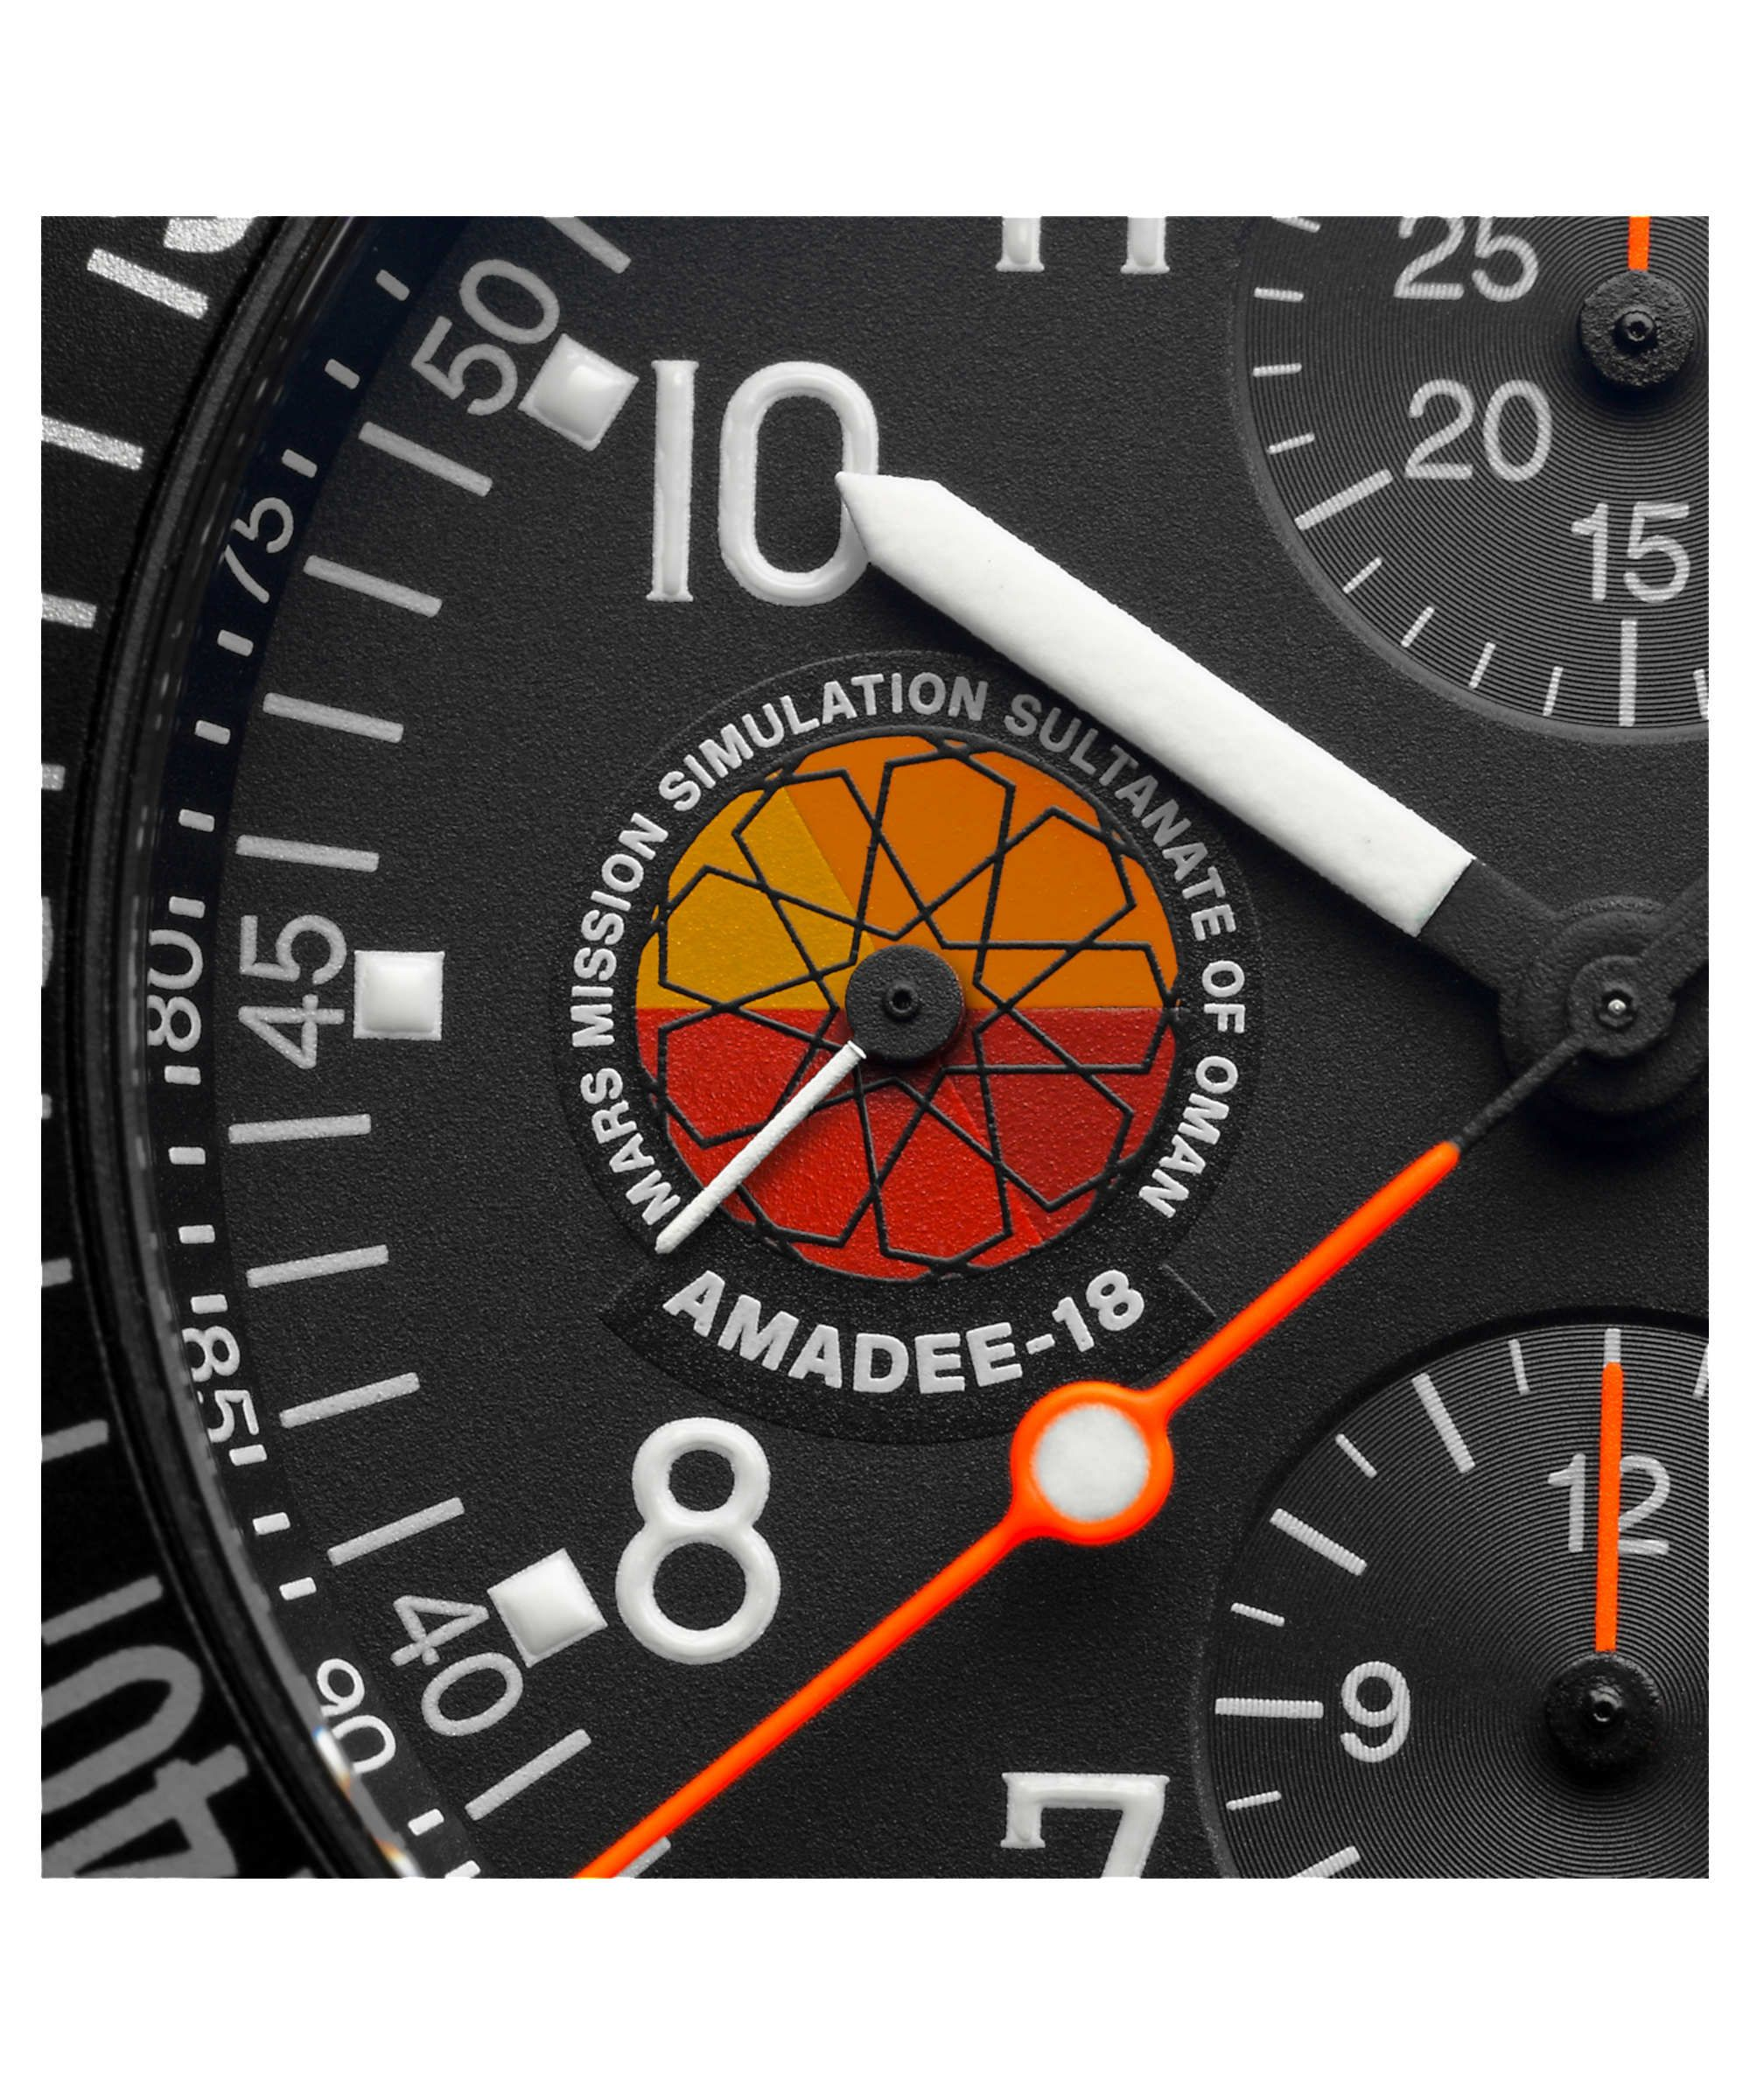 Fortis Official Cosmonauts Amadee-18 - 132156 638.18.91